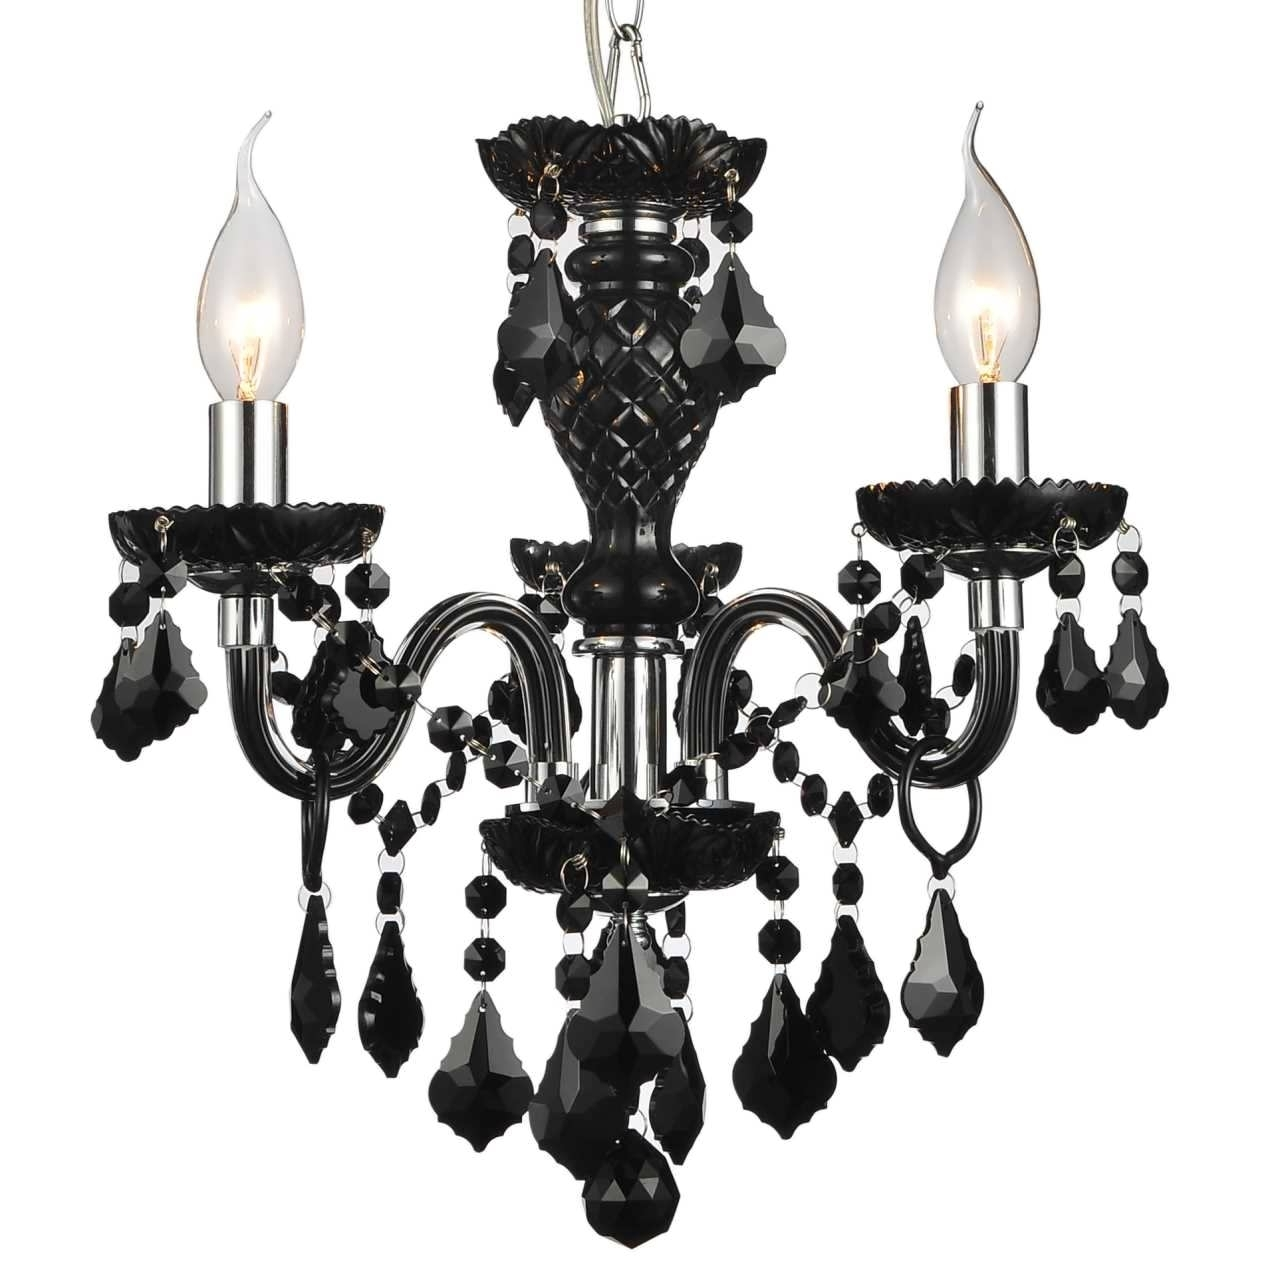 Black Gothic Chandelier Pertaining To Best And Newest Chandeliers Design : Fabulous Gothic Chandelier Black Wrought Iron (View 20 of 20)